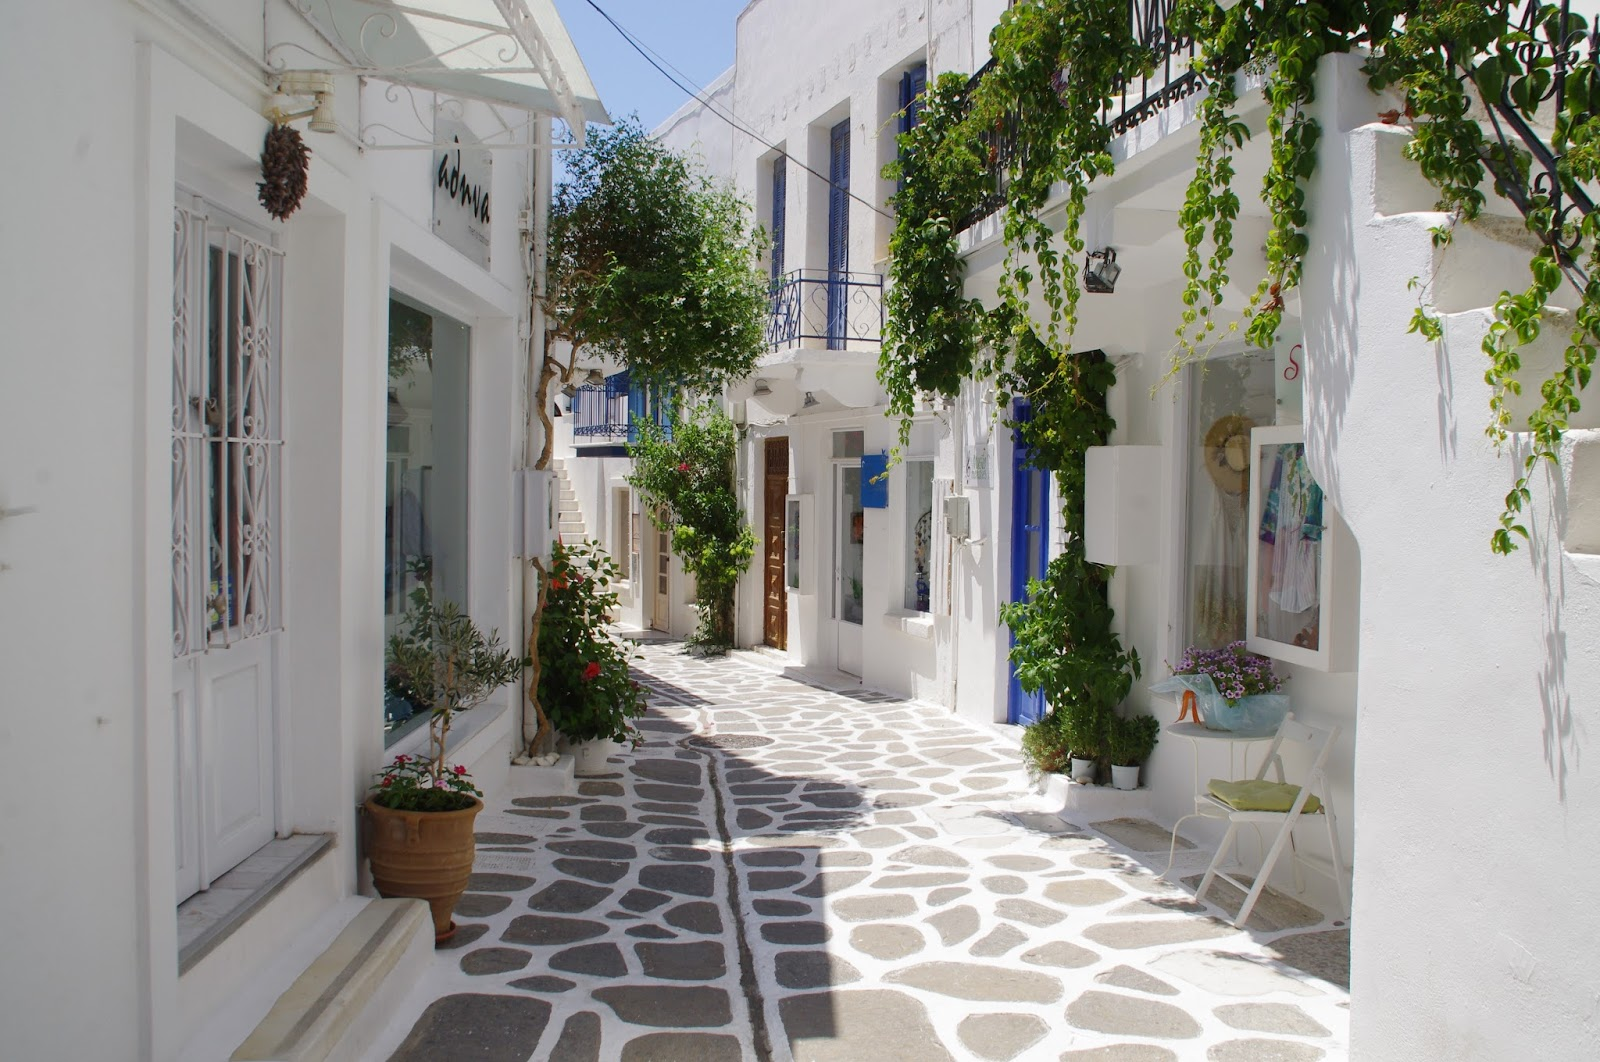 Streets of Parikia Paros